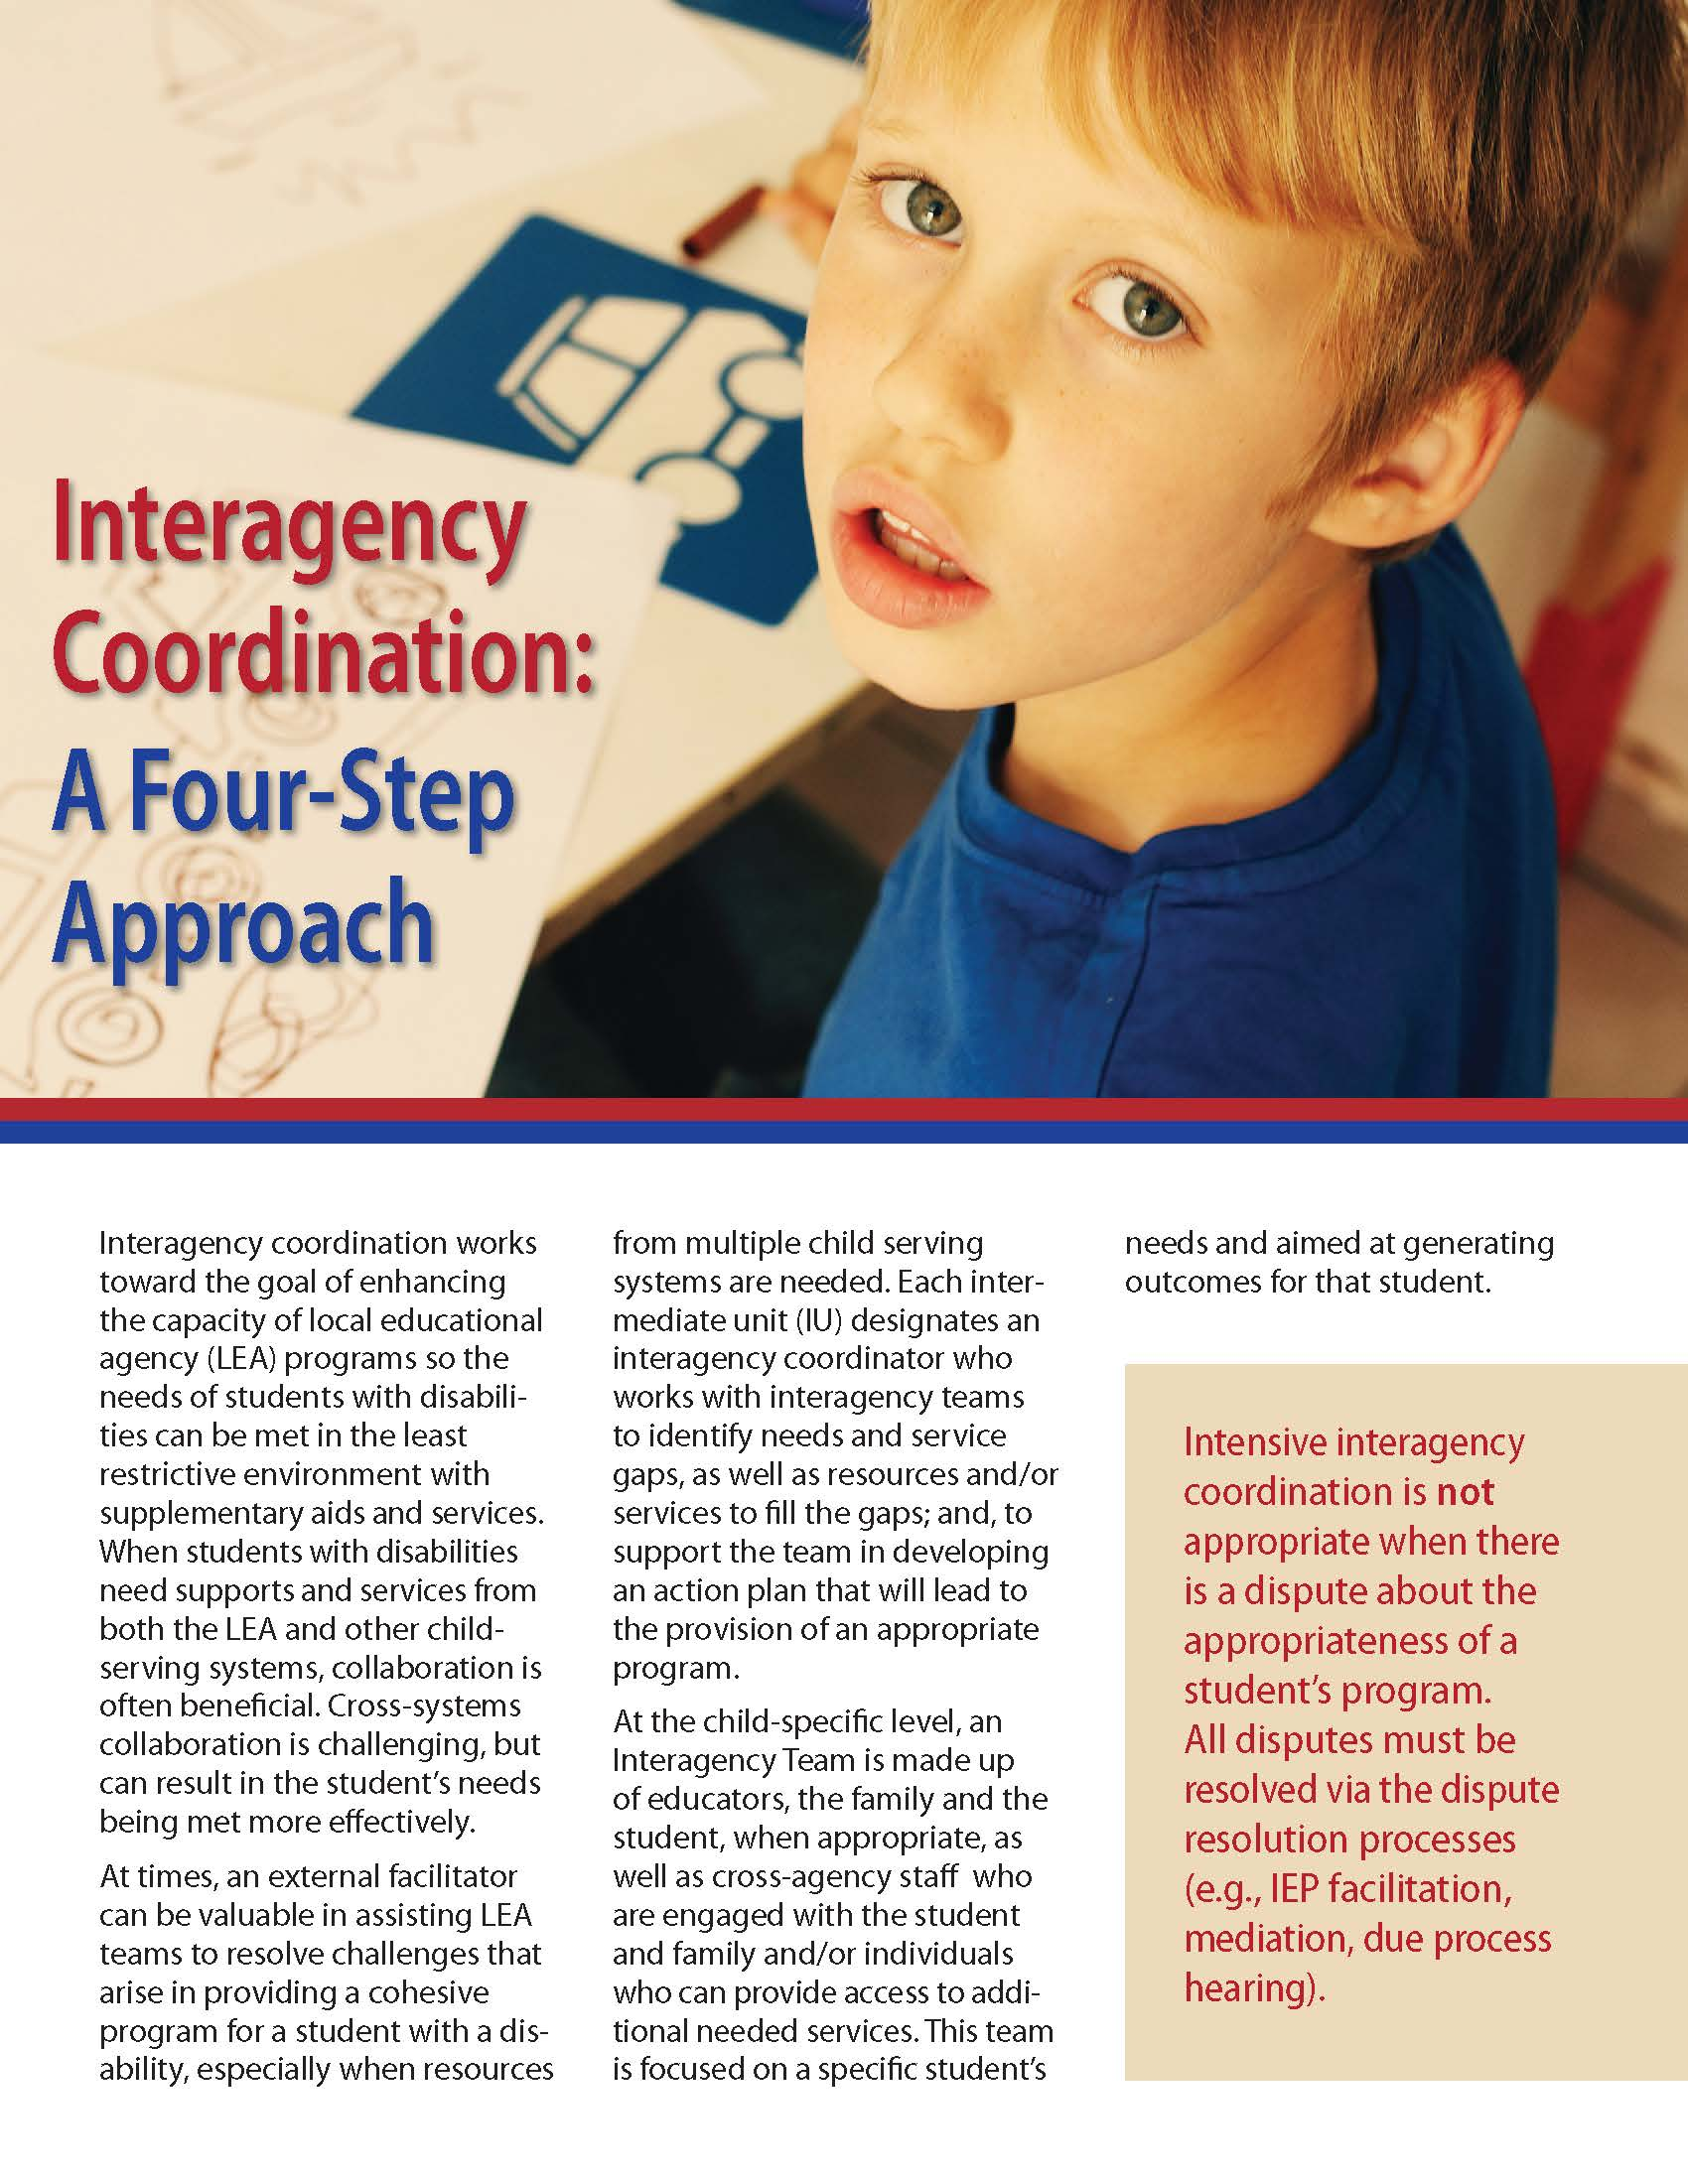 Interagency Coordination: A Four-Step Approach